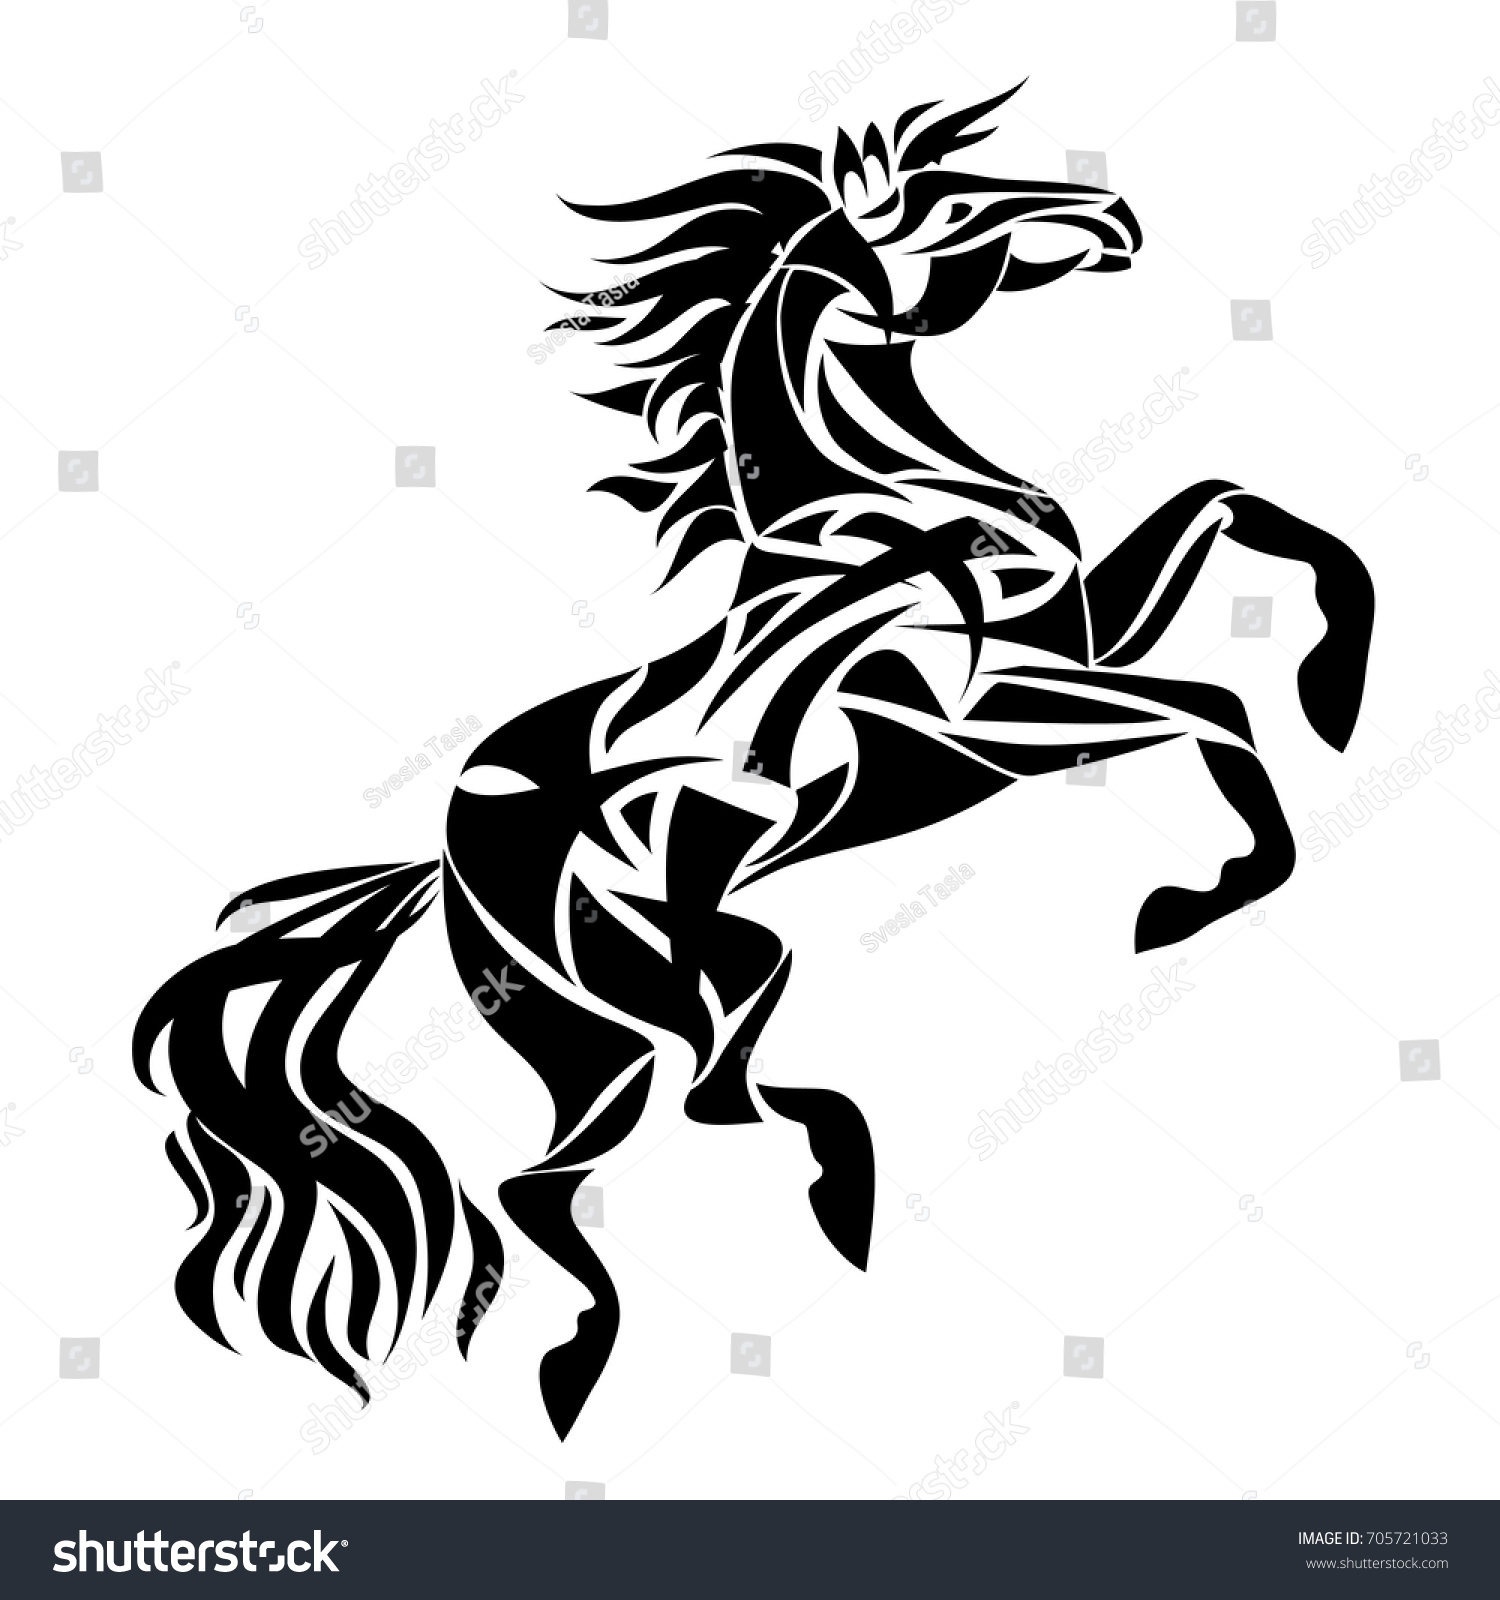 Vector Silhouette Horse Stylized Illustration Design Stock Vector Royalty Free 705721033